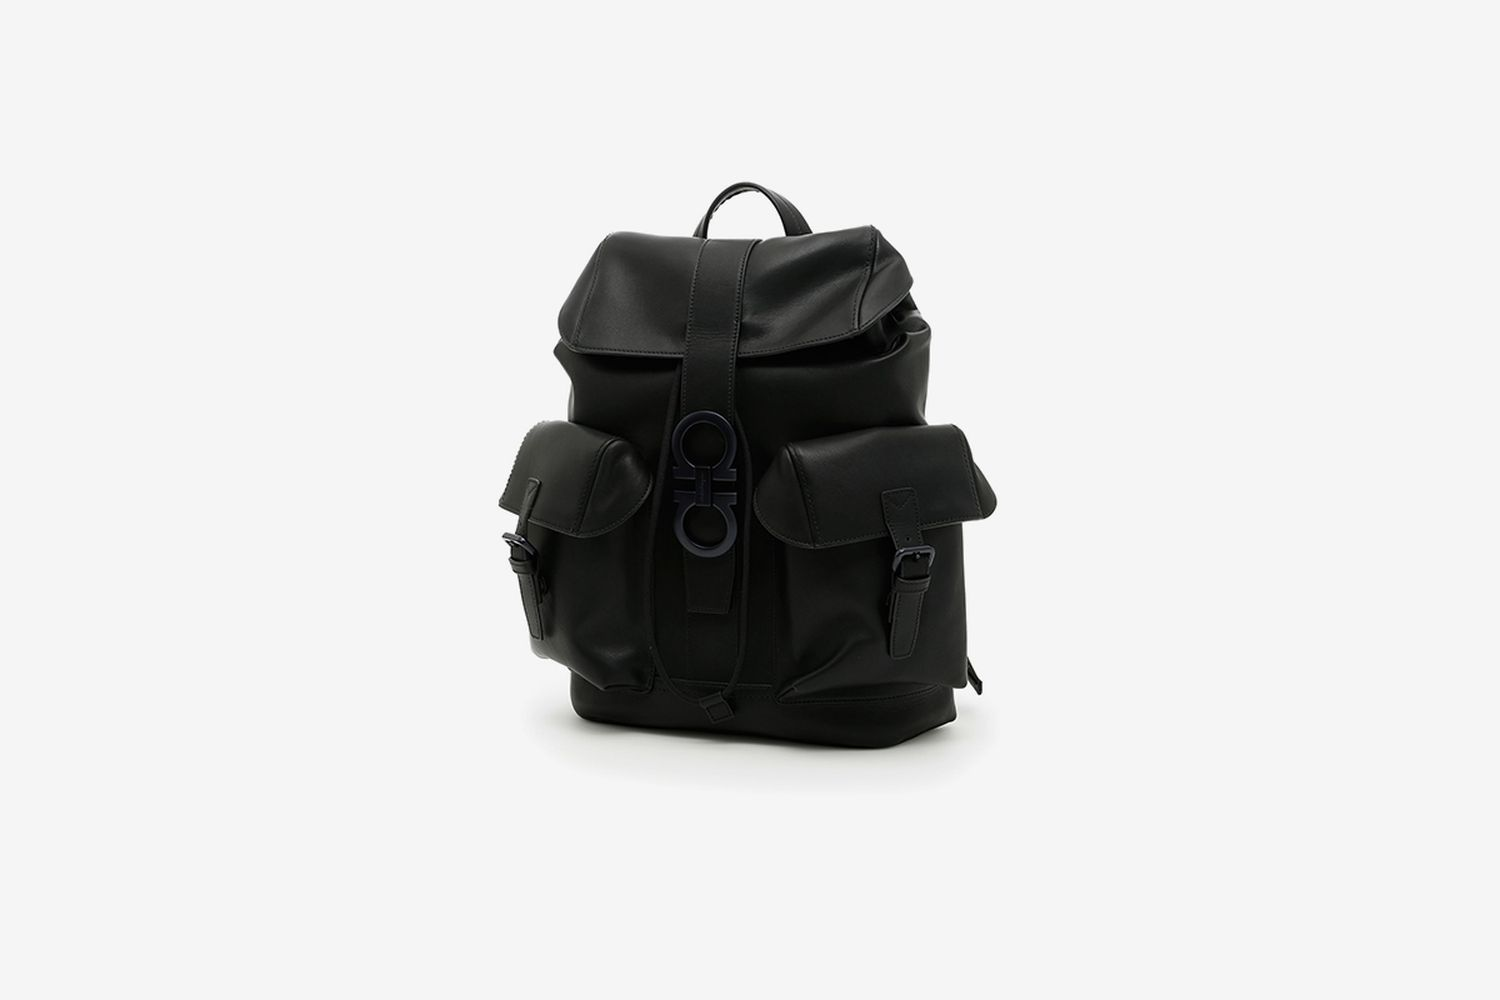 Techno Leather Gancio Backpack